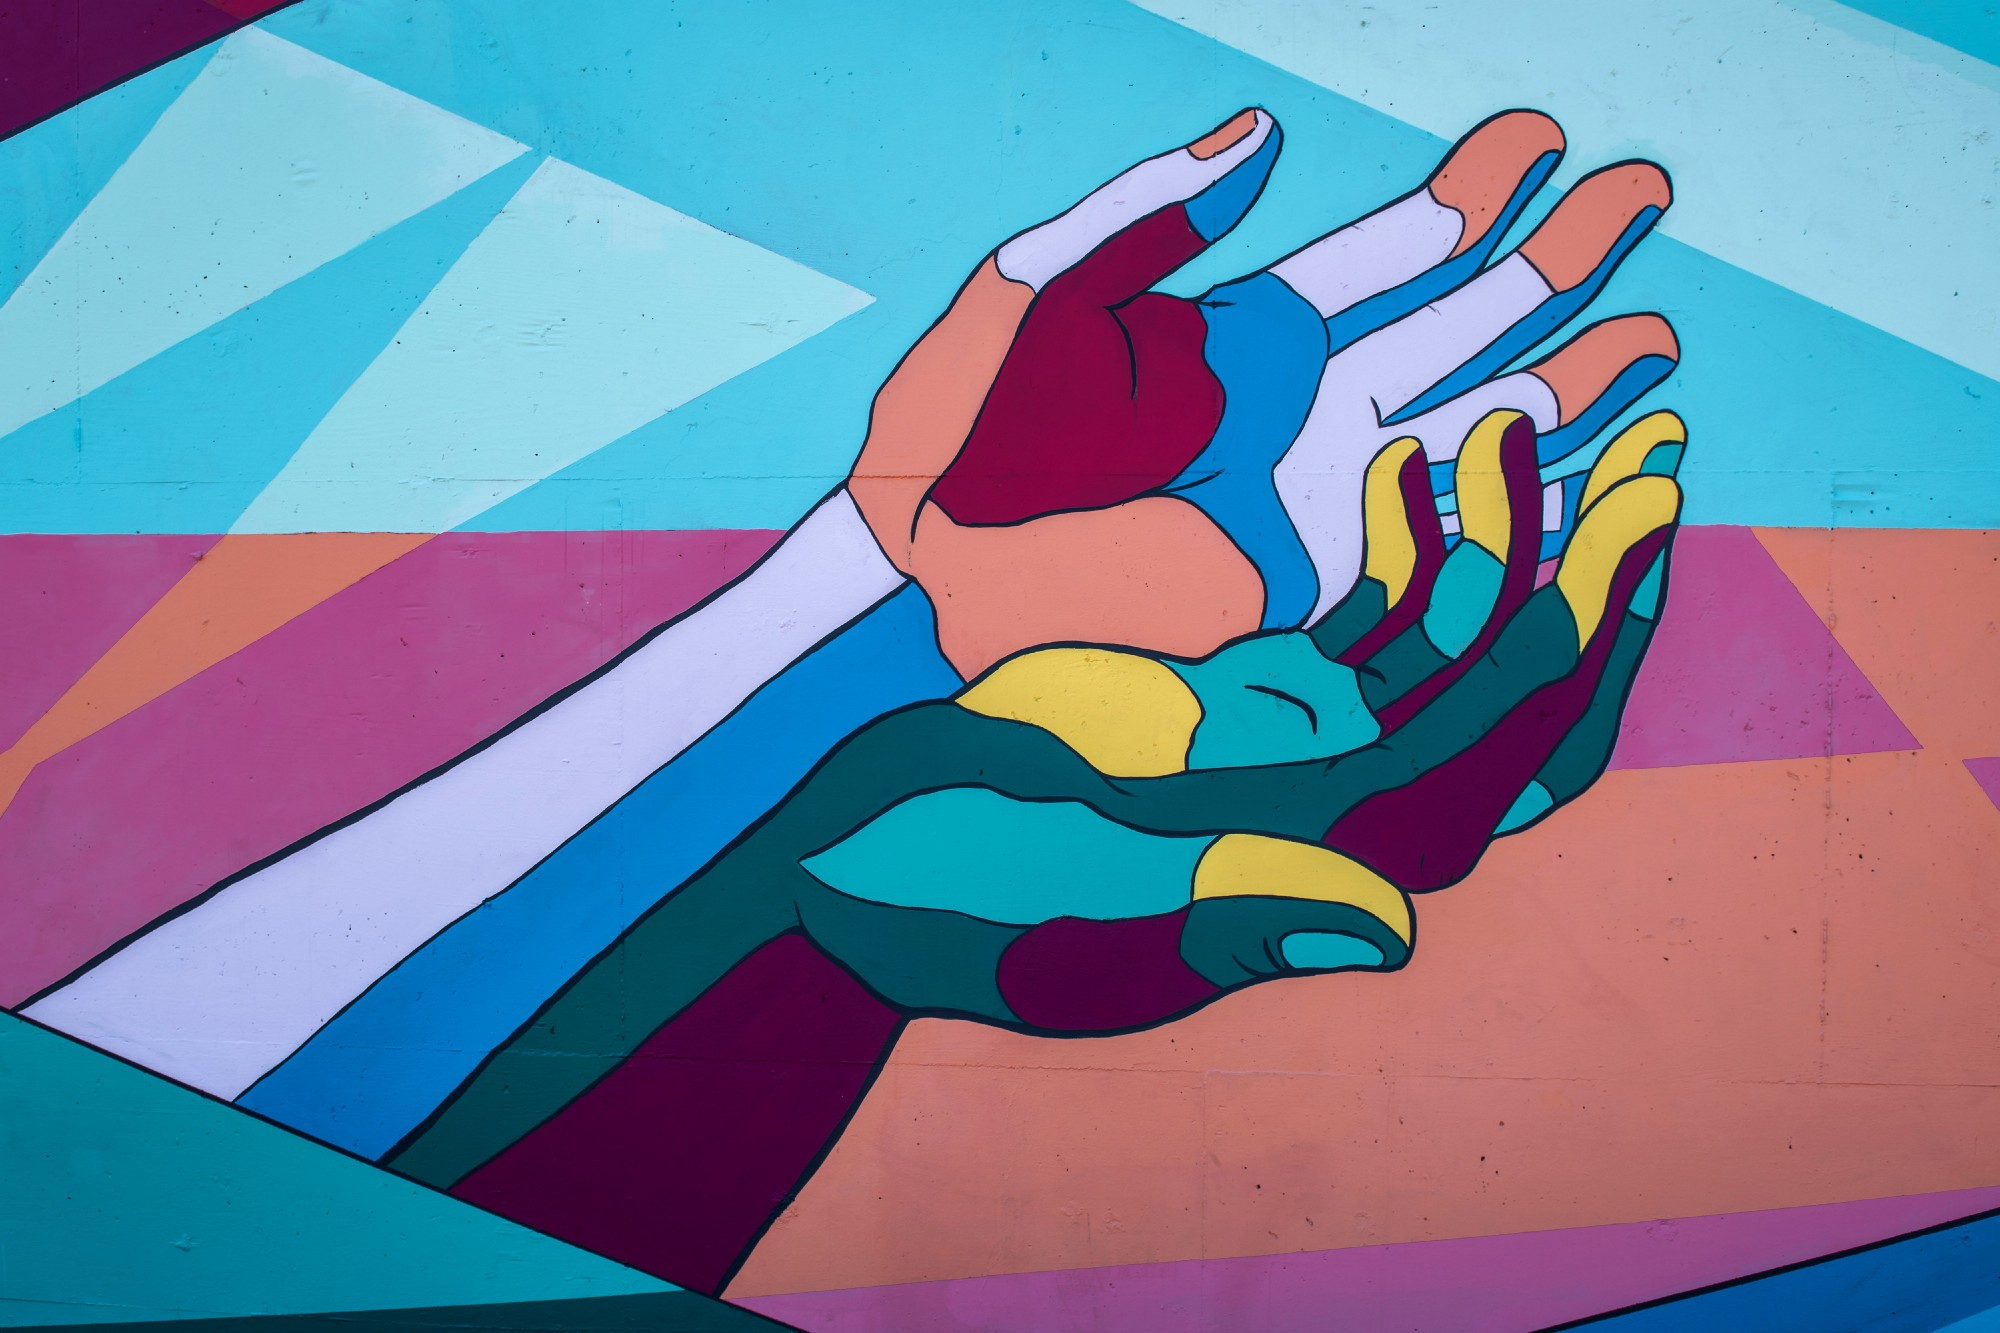 Colorful, stylized illustration of two open palm hands, one on top of the other